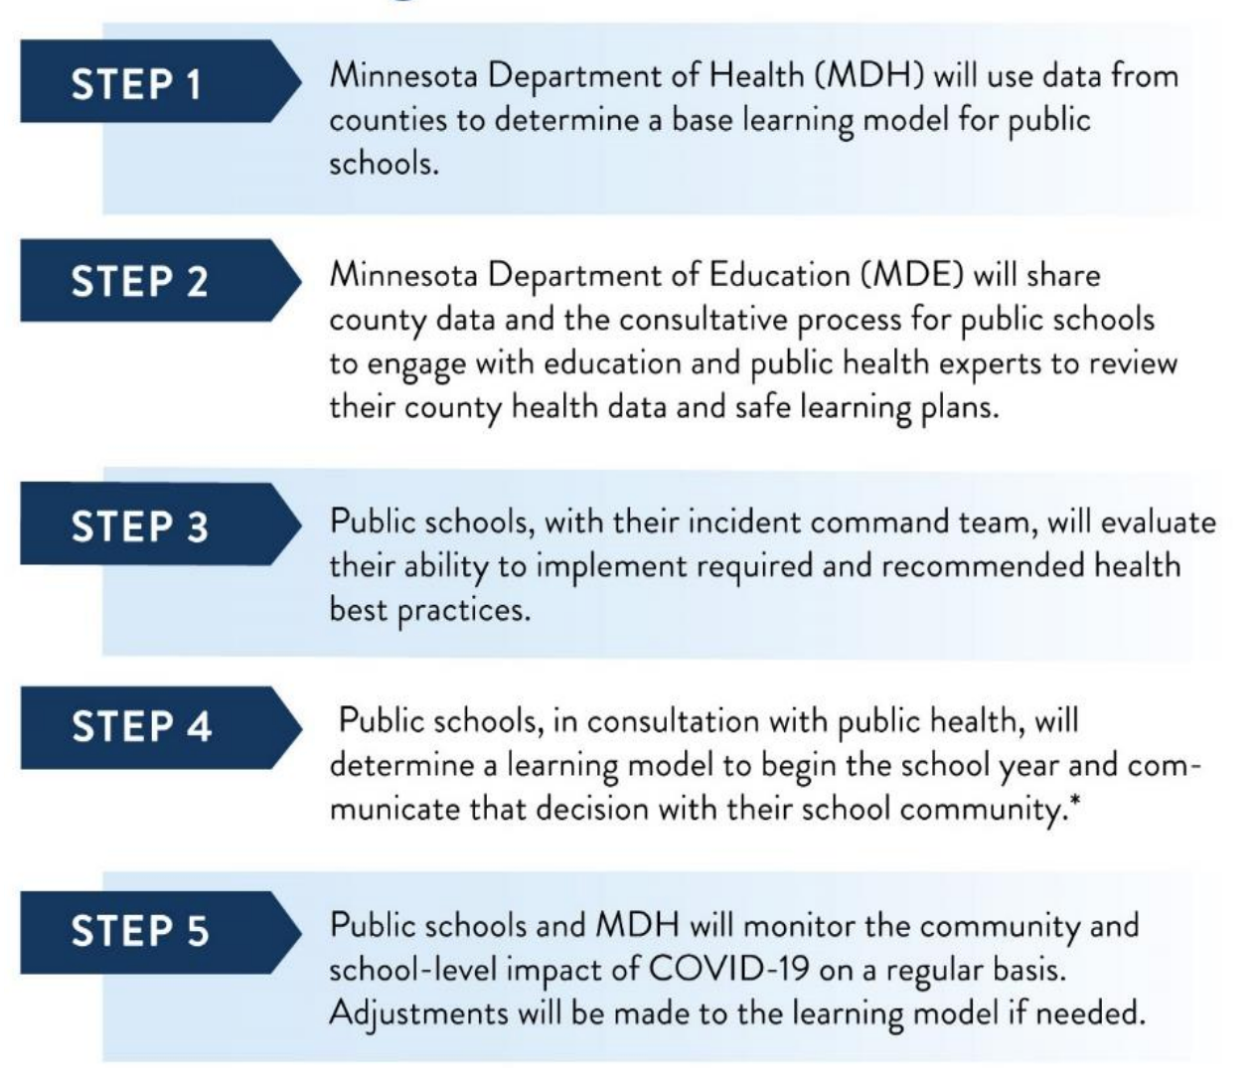 Step 5: Public schools and MDH will monitor the community and school-level impact of COVID-19 on a regular basis. Adjustments will be mde to the learning model if needed.